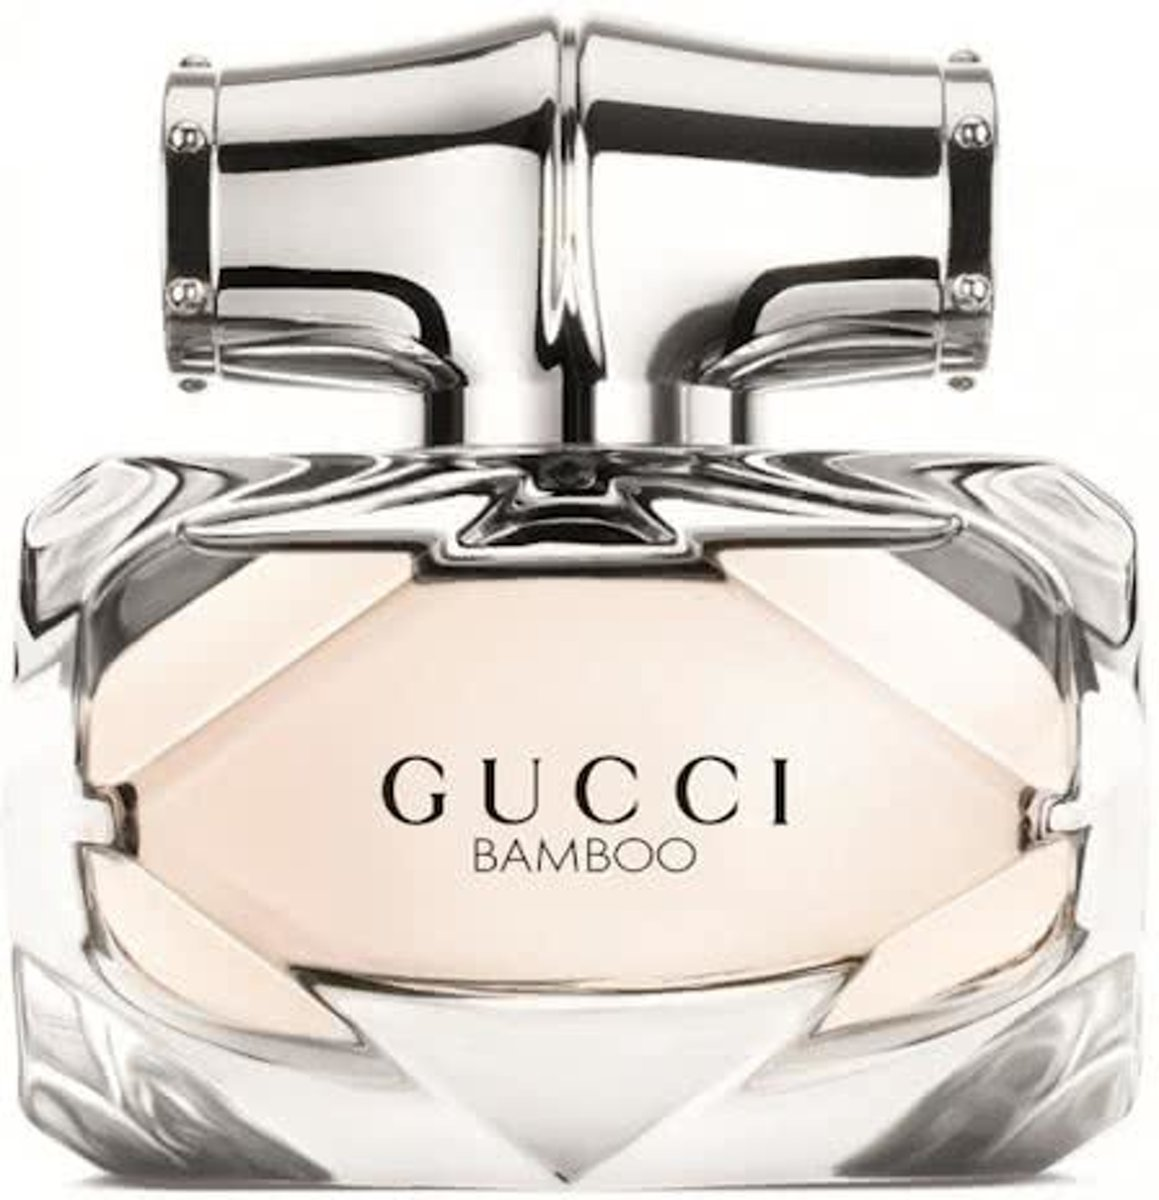 GucciGucci Bamboo edt 75 ml